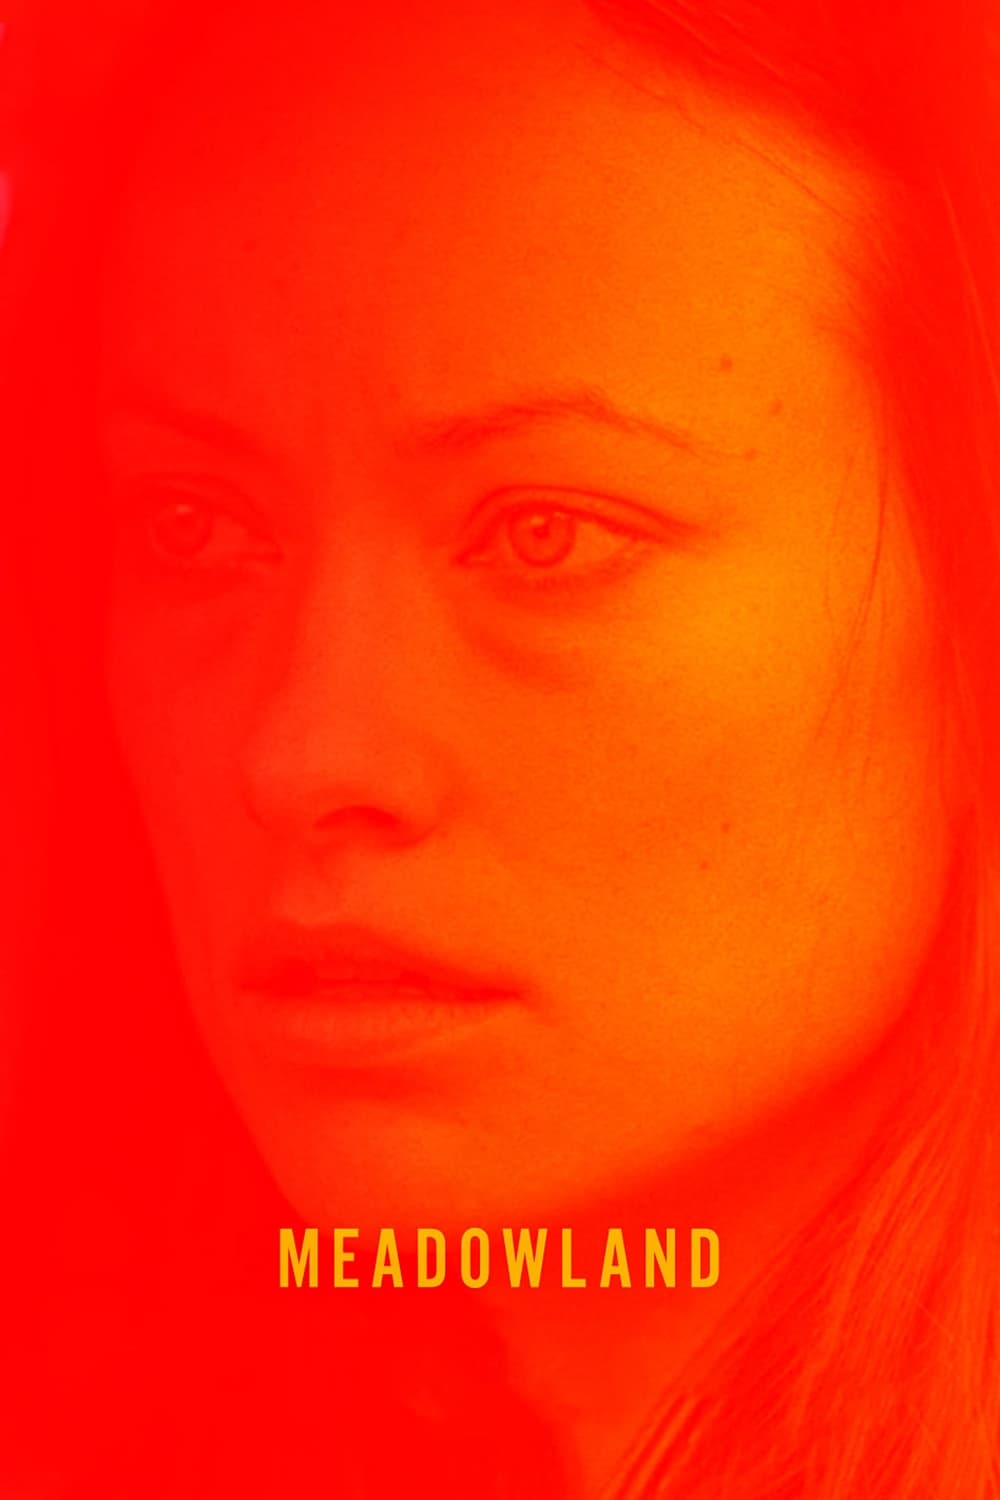 Meadowland - 2015